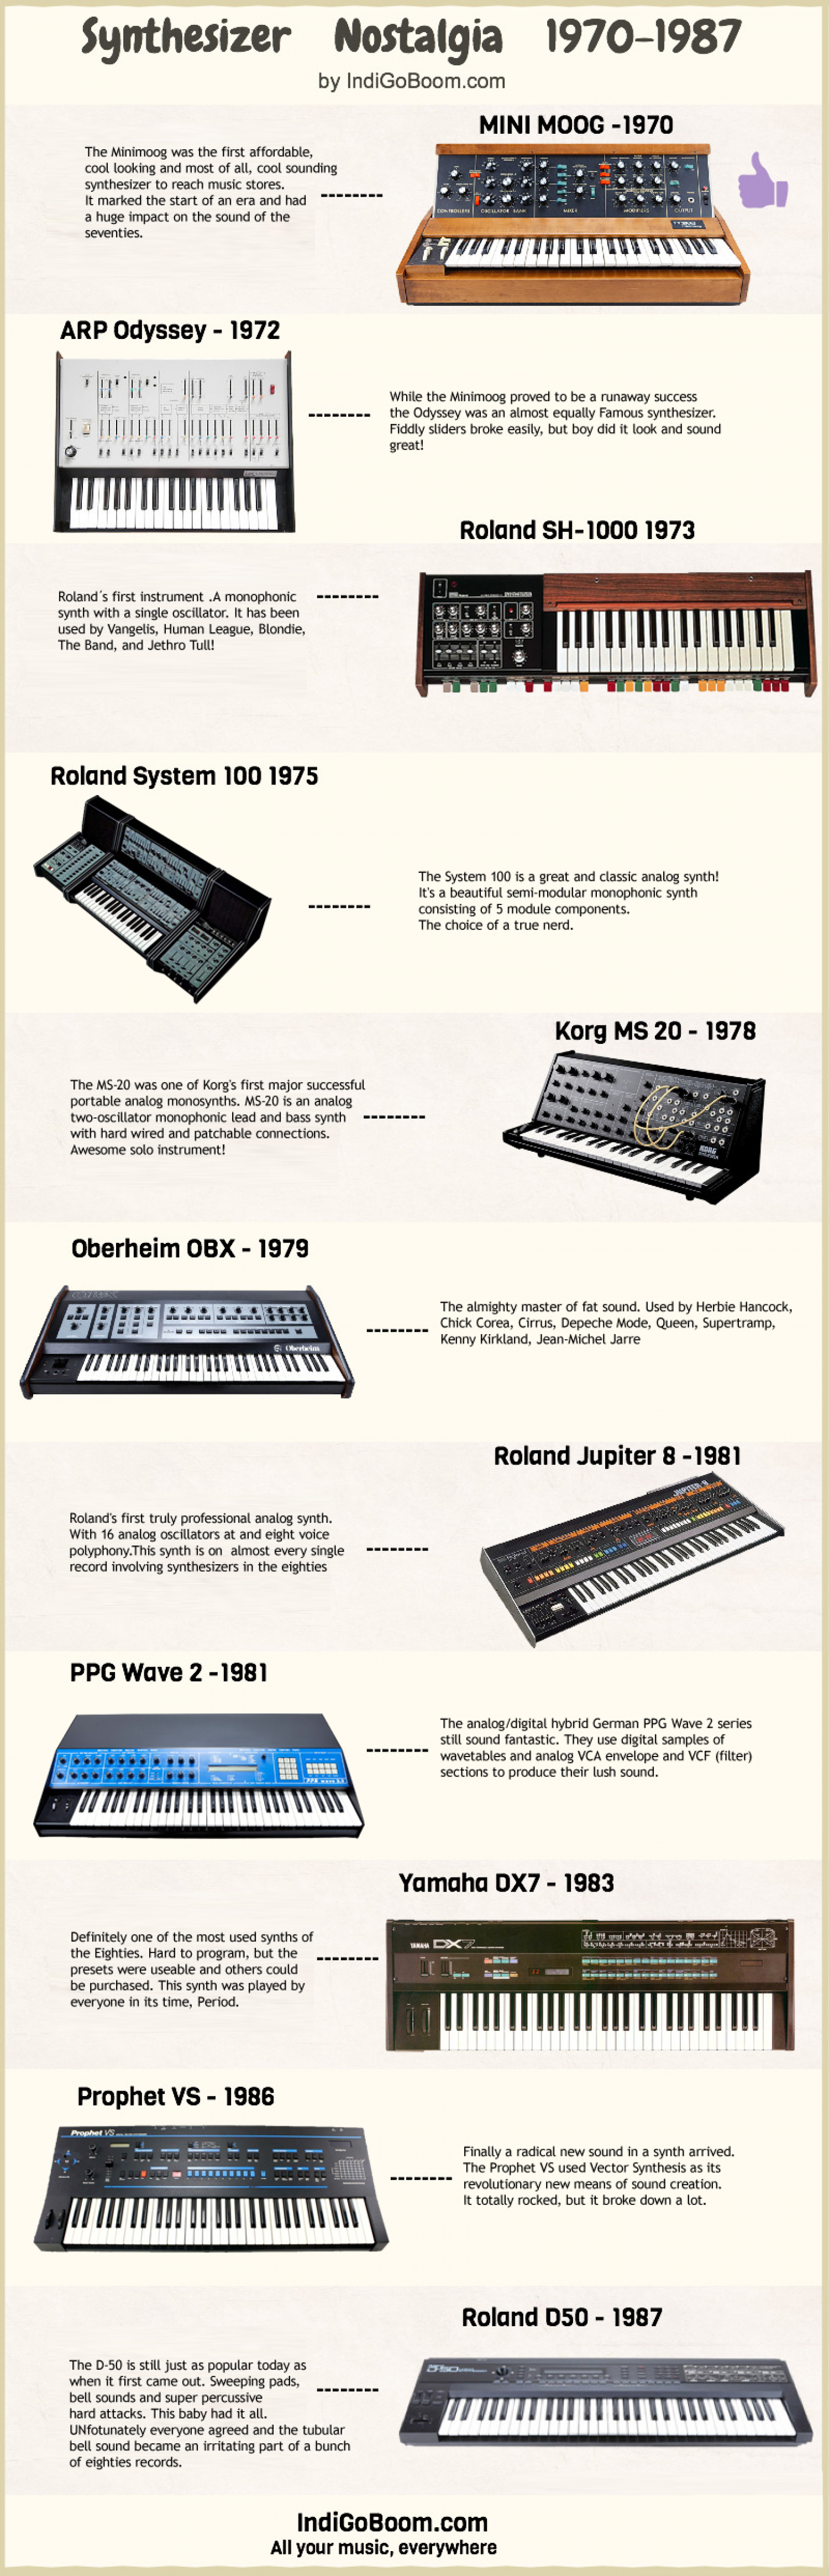 Synthesizer Nostalgia Infographic